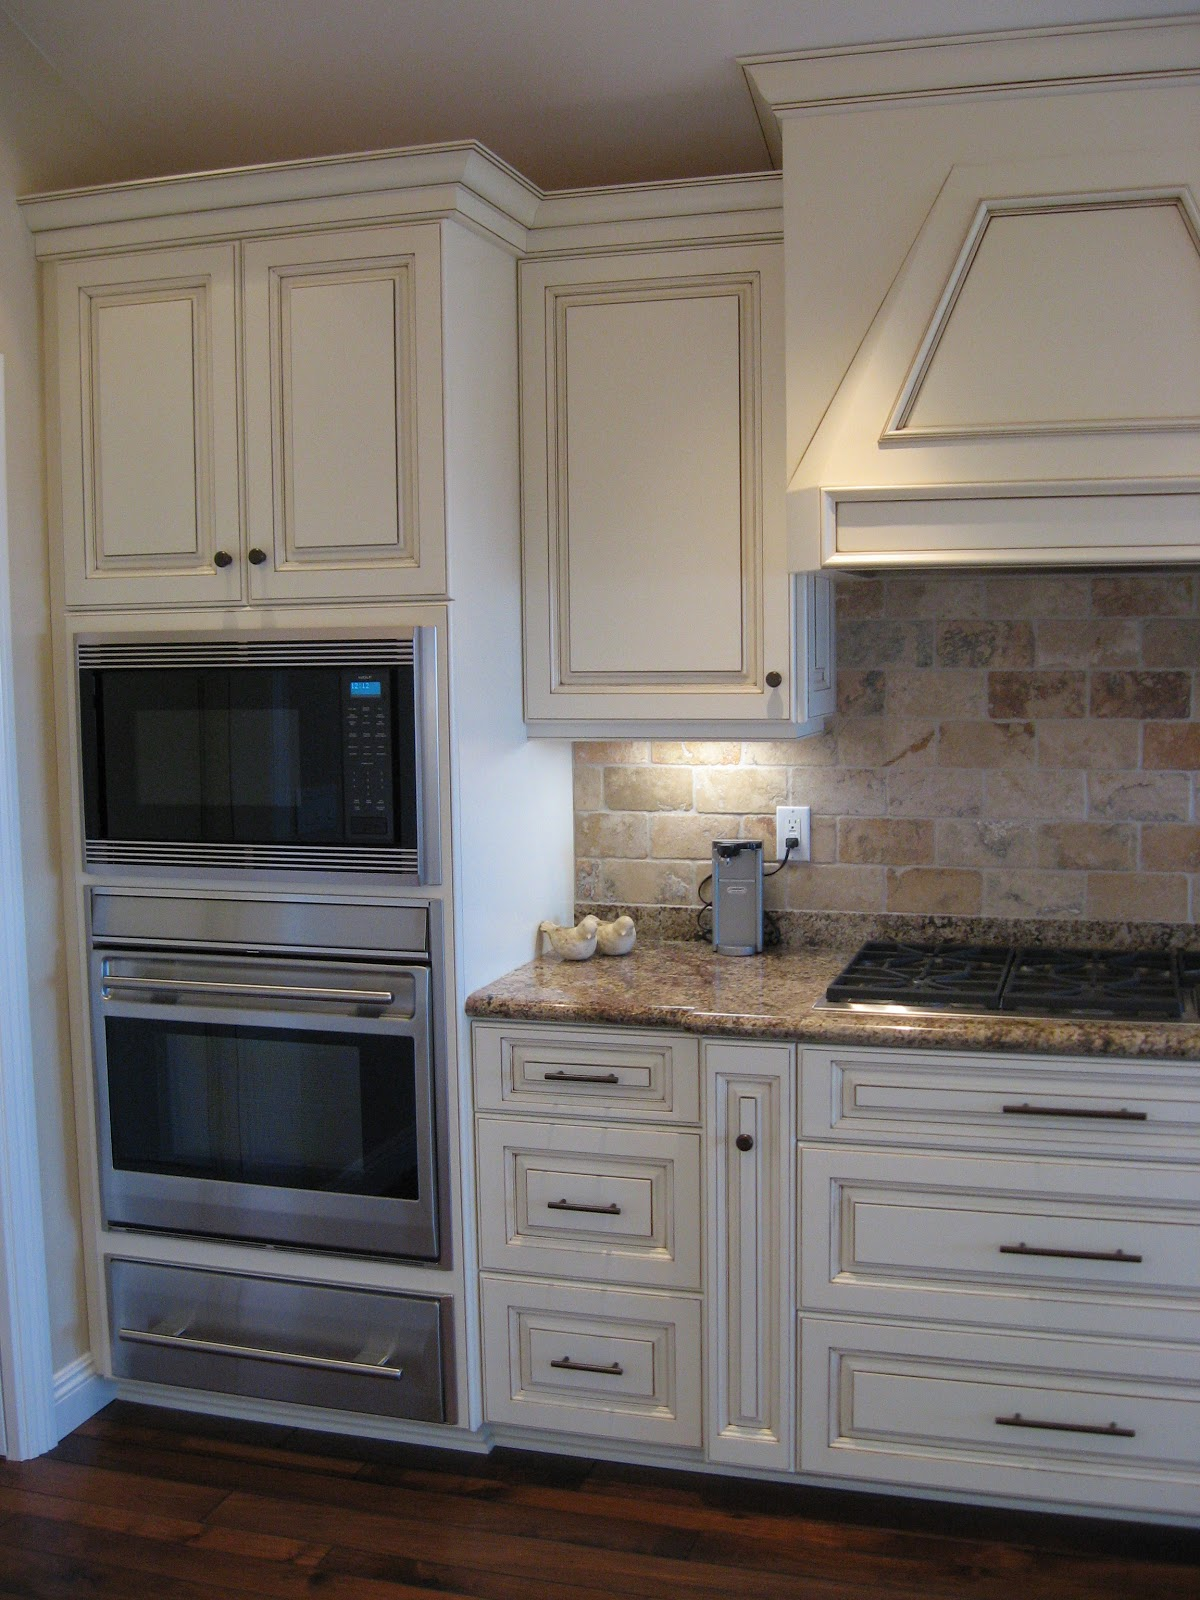 Glazed custom kitchen cabinets mader cabinet co for Kitchen cabinets images photos